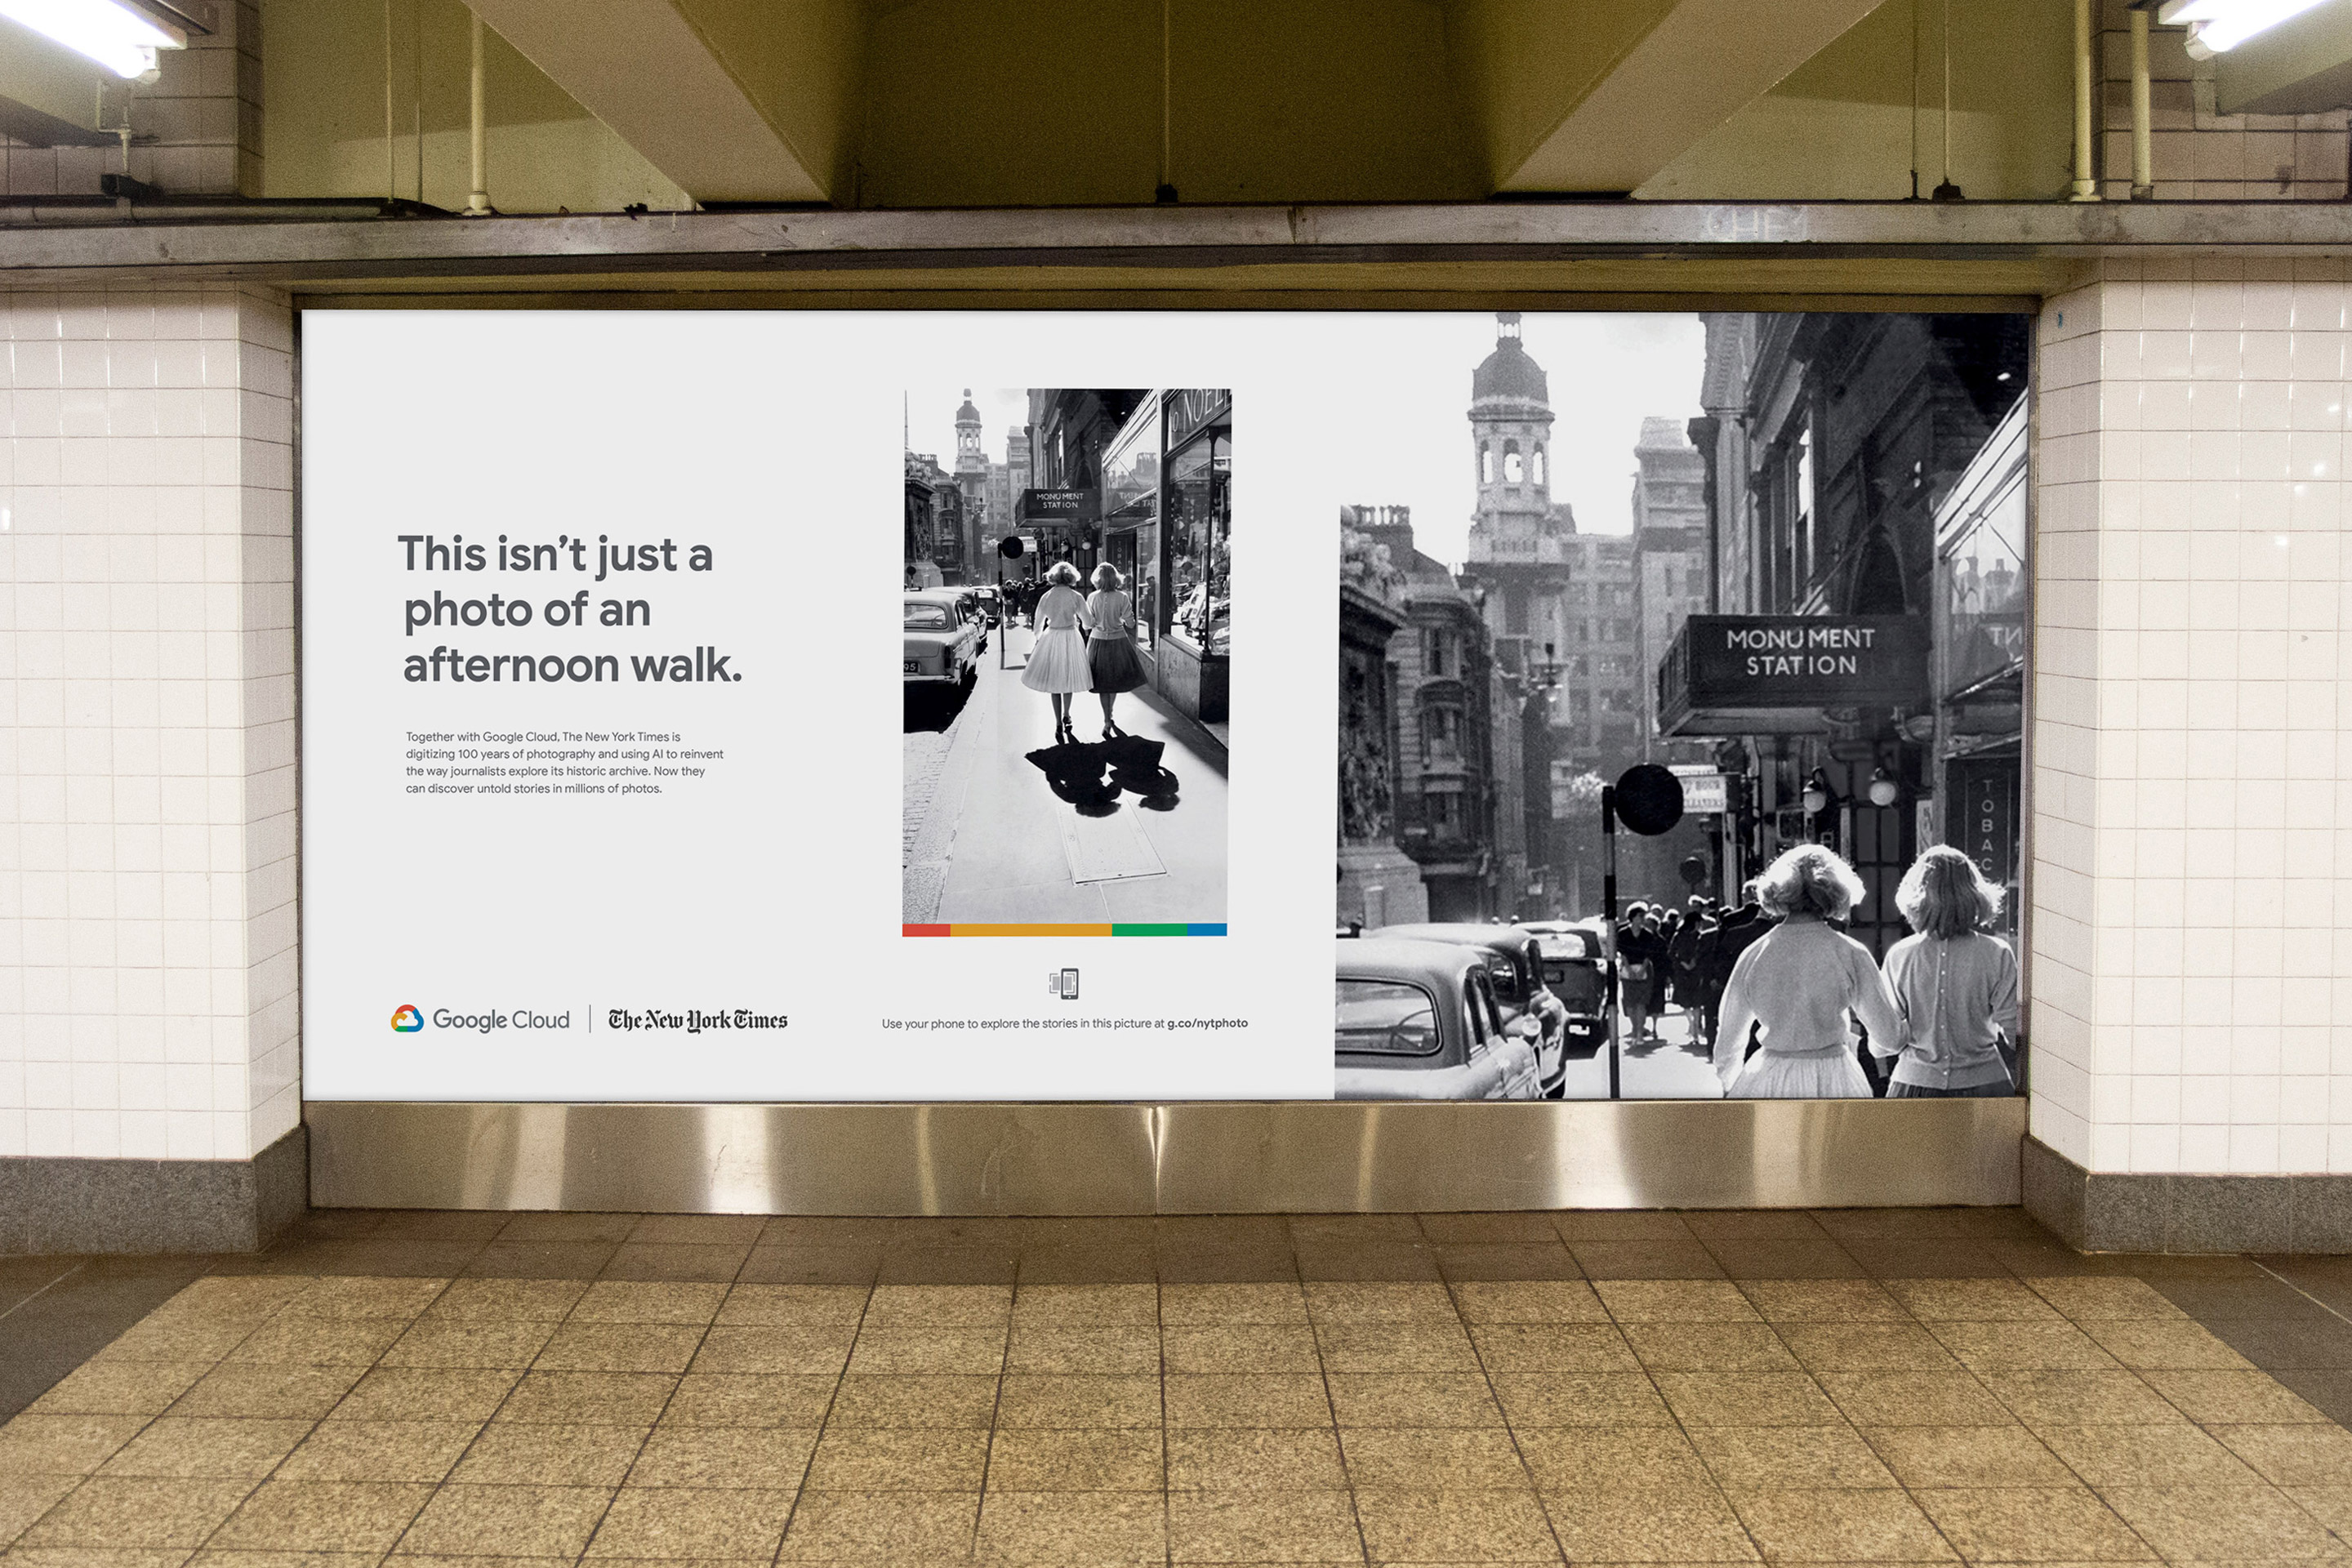 Google Cloud doubles down on its New York Times campaign | AdAge